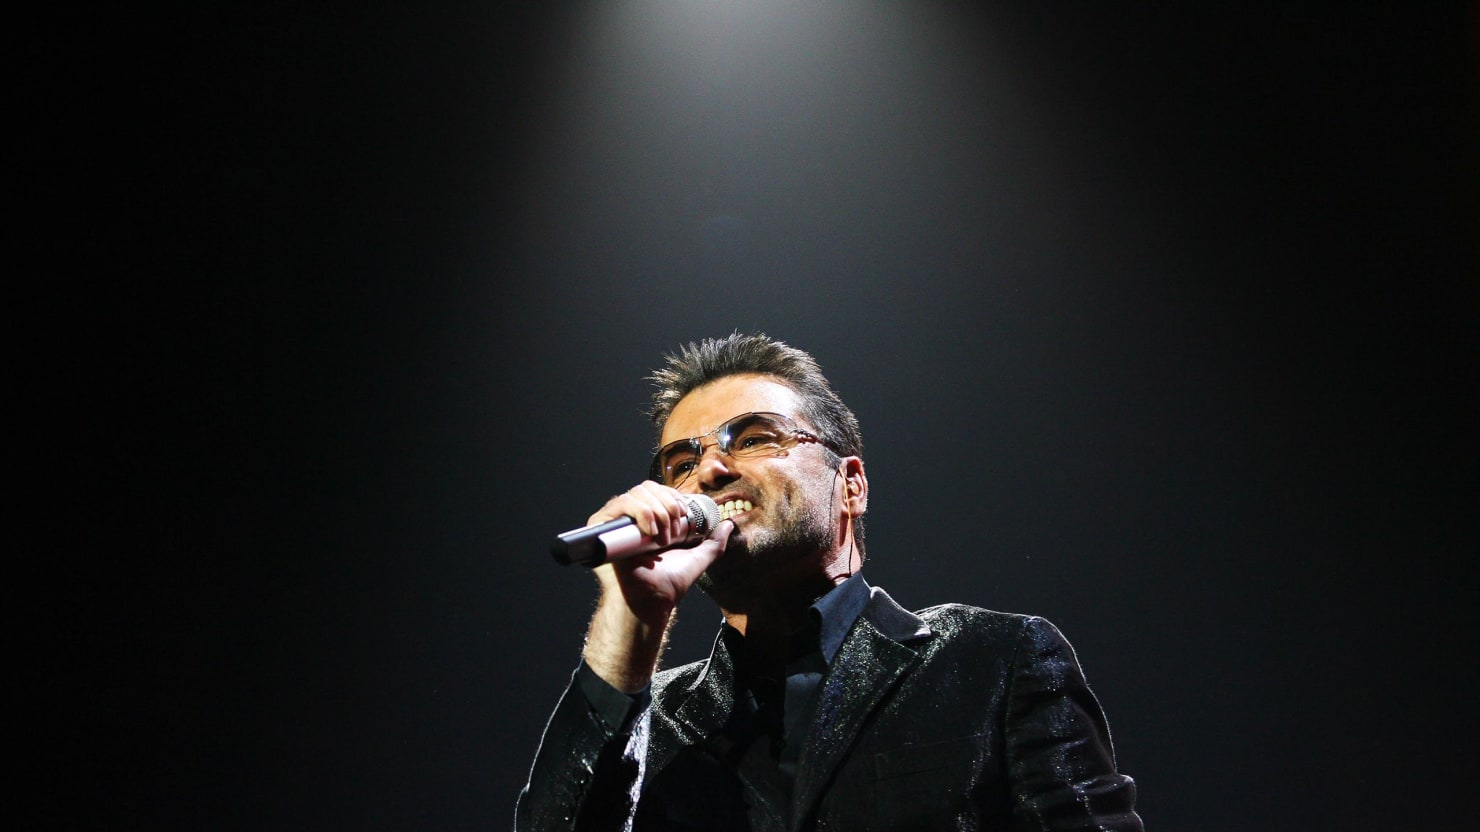 last christmas played as george michael died the songs unlikely history is a tribute to its creator - The Last Christmas